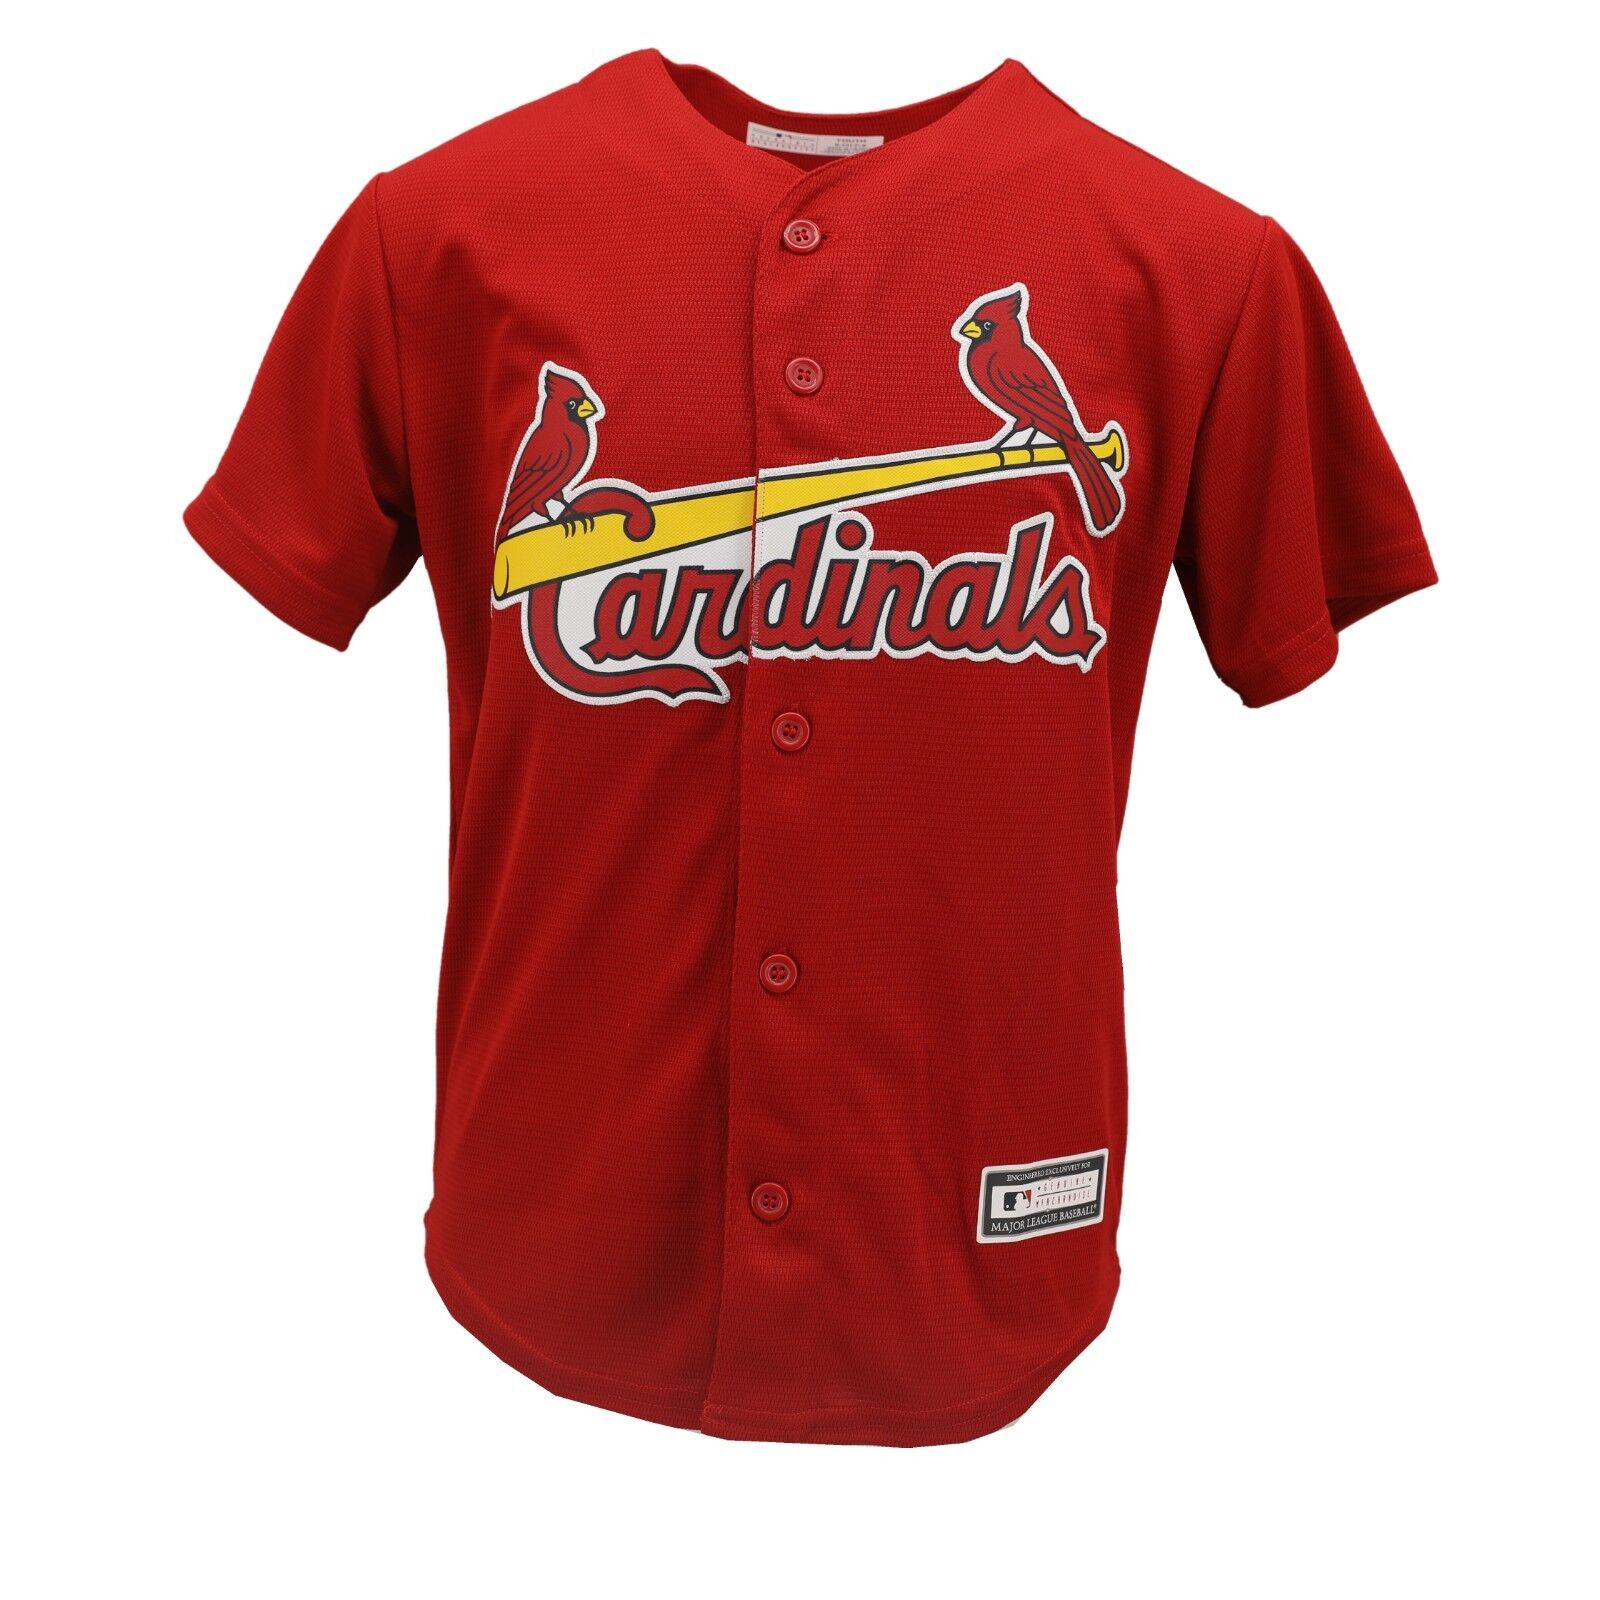 f126eb6b Details about St. Louis Cardinals Official MLB Genuine Apparel Kids Youth  Size Jersey New Tags